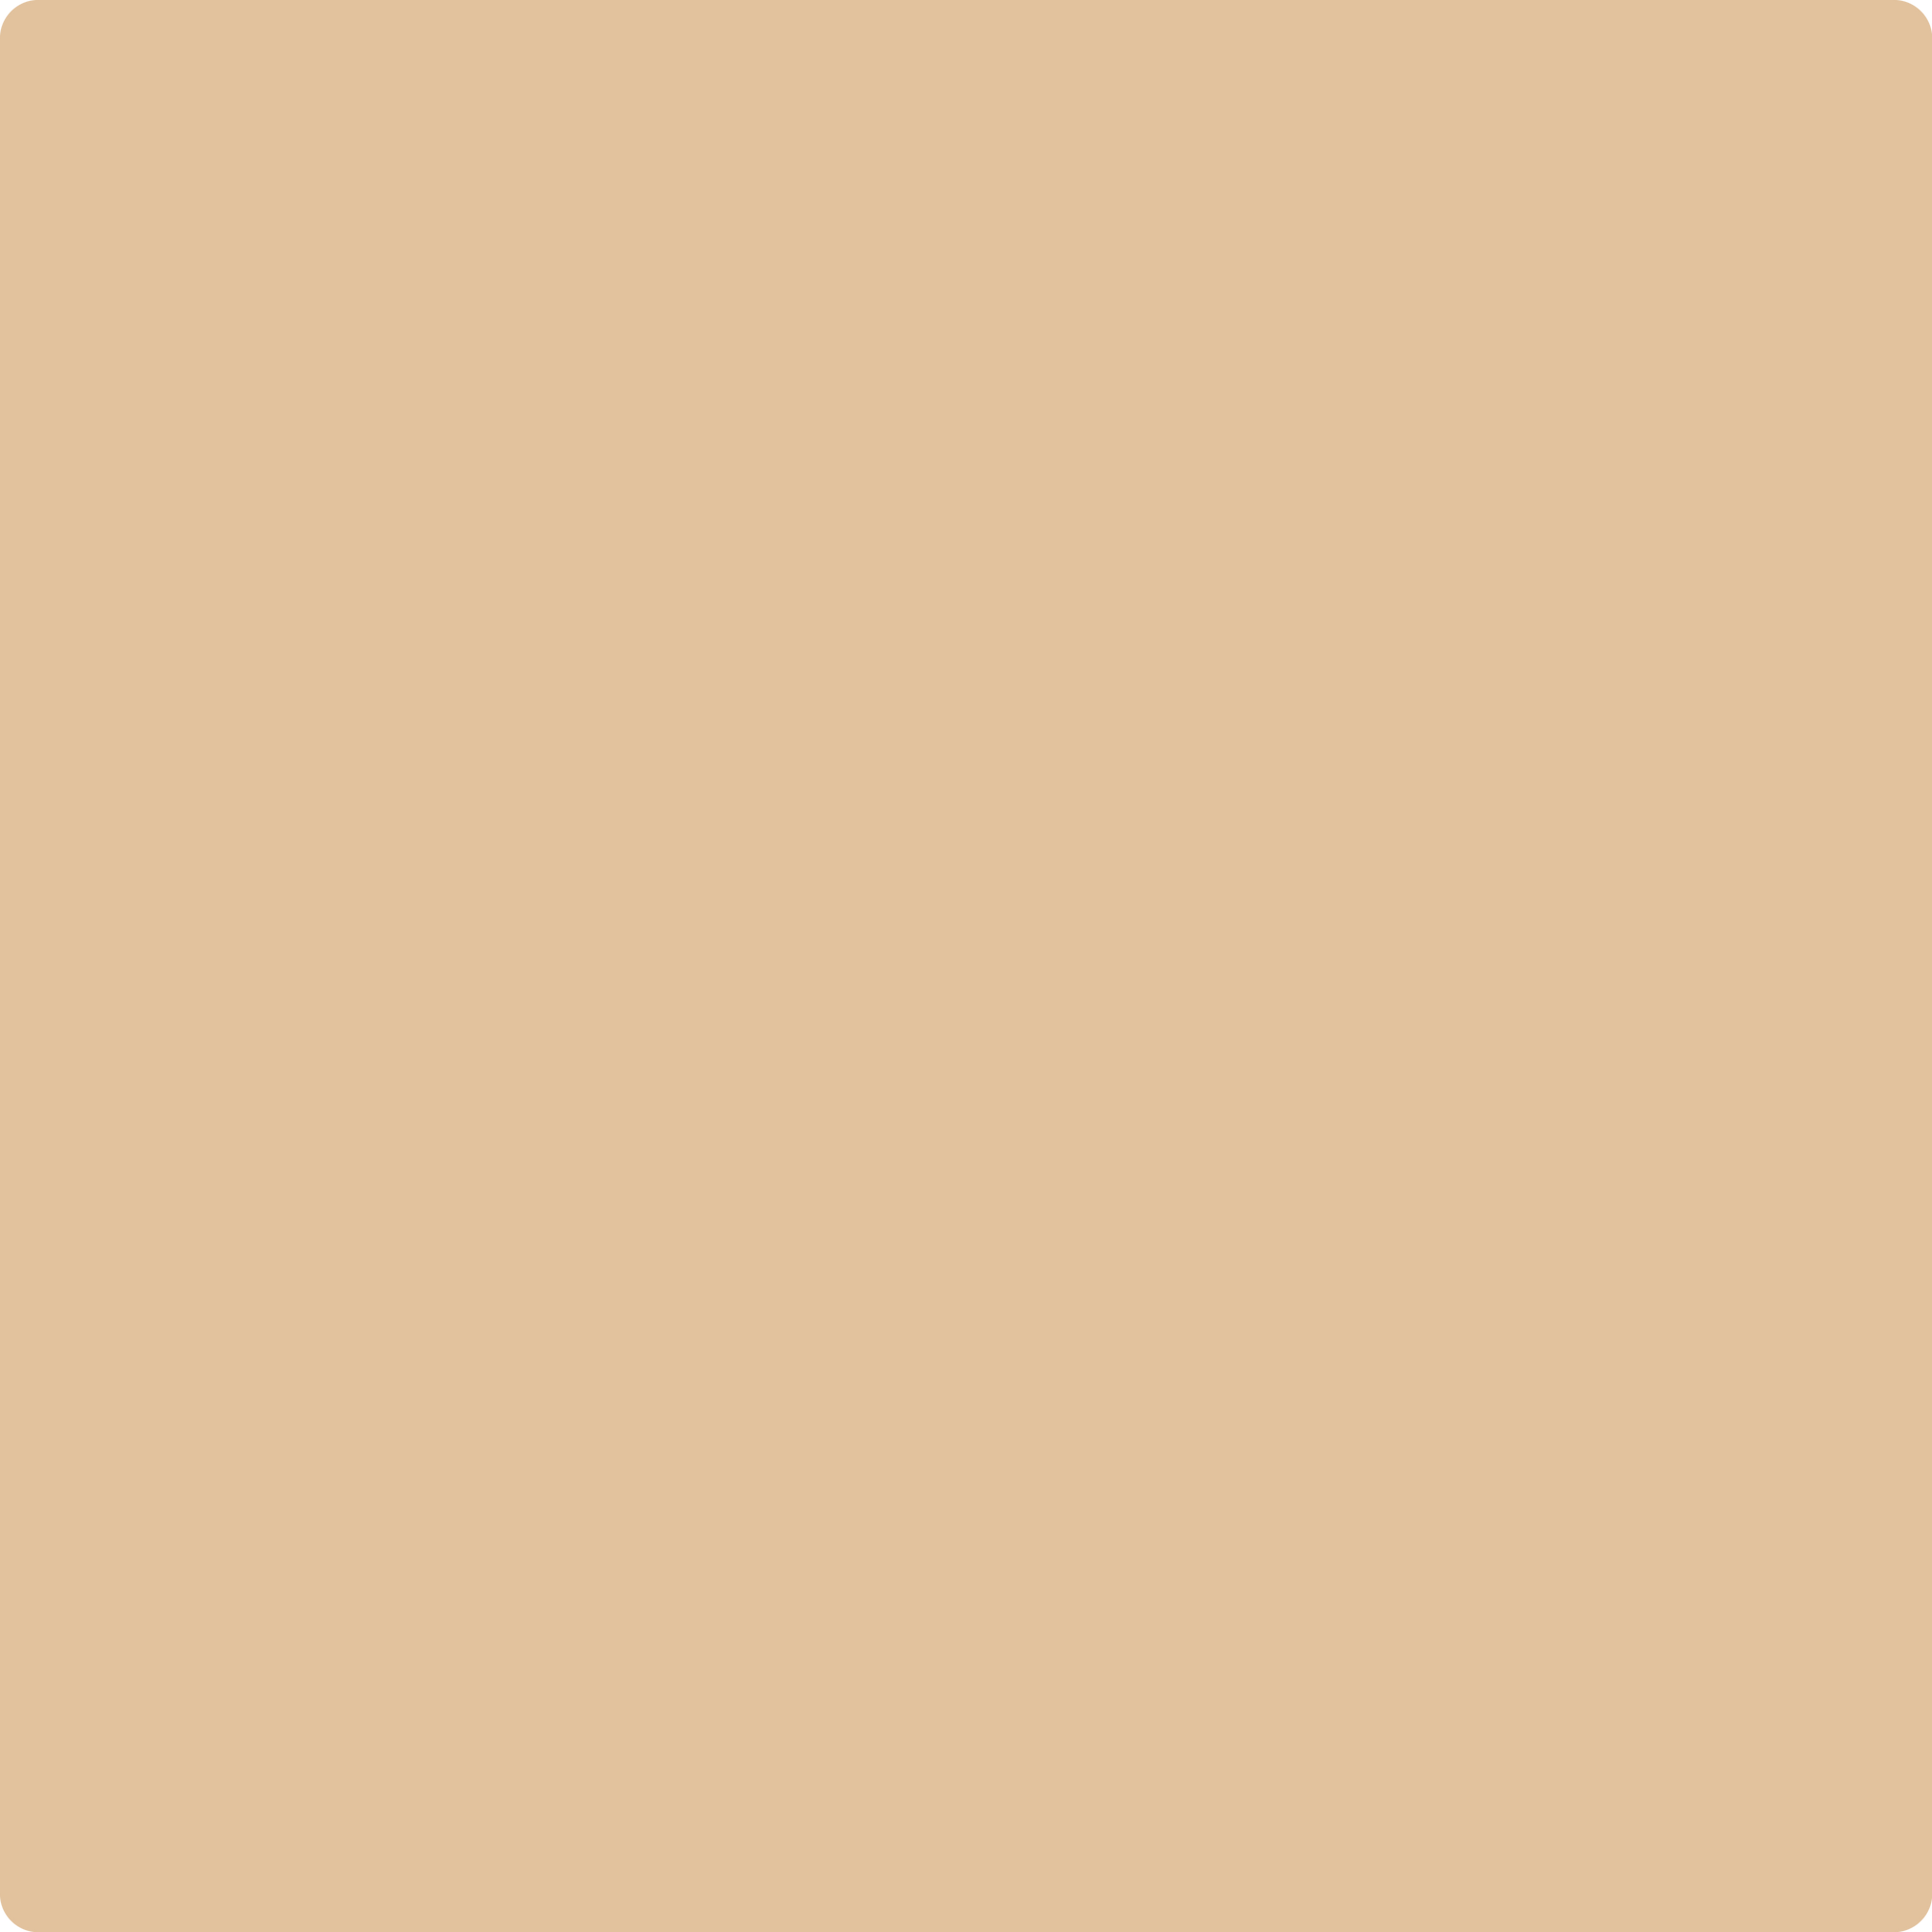 1144 Tucson Tan A Paint Color By Benjamin Moore Aboff S